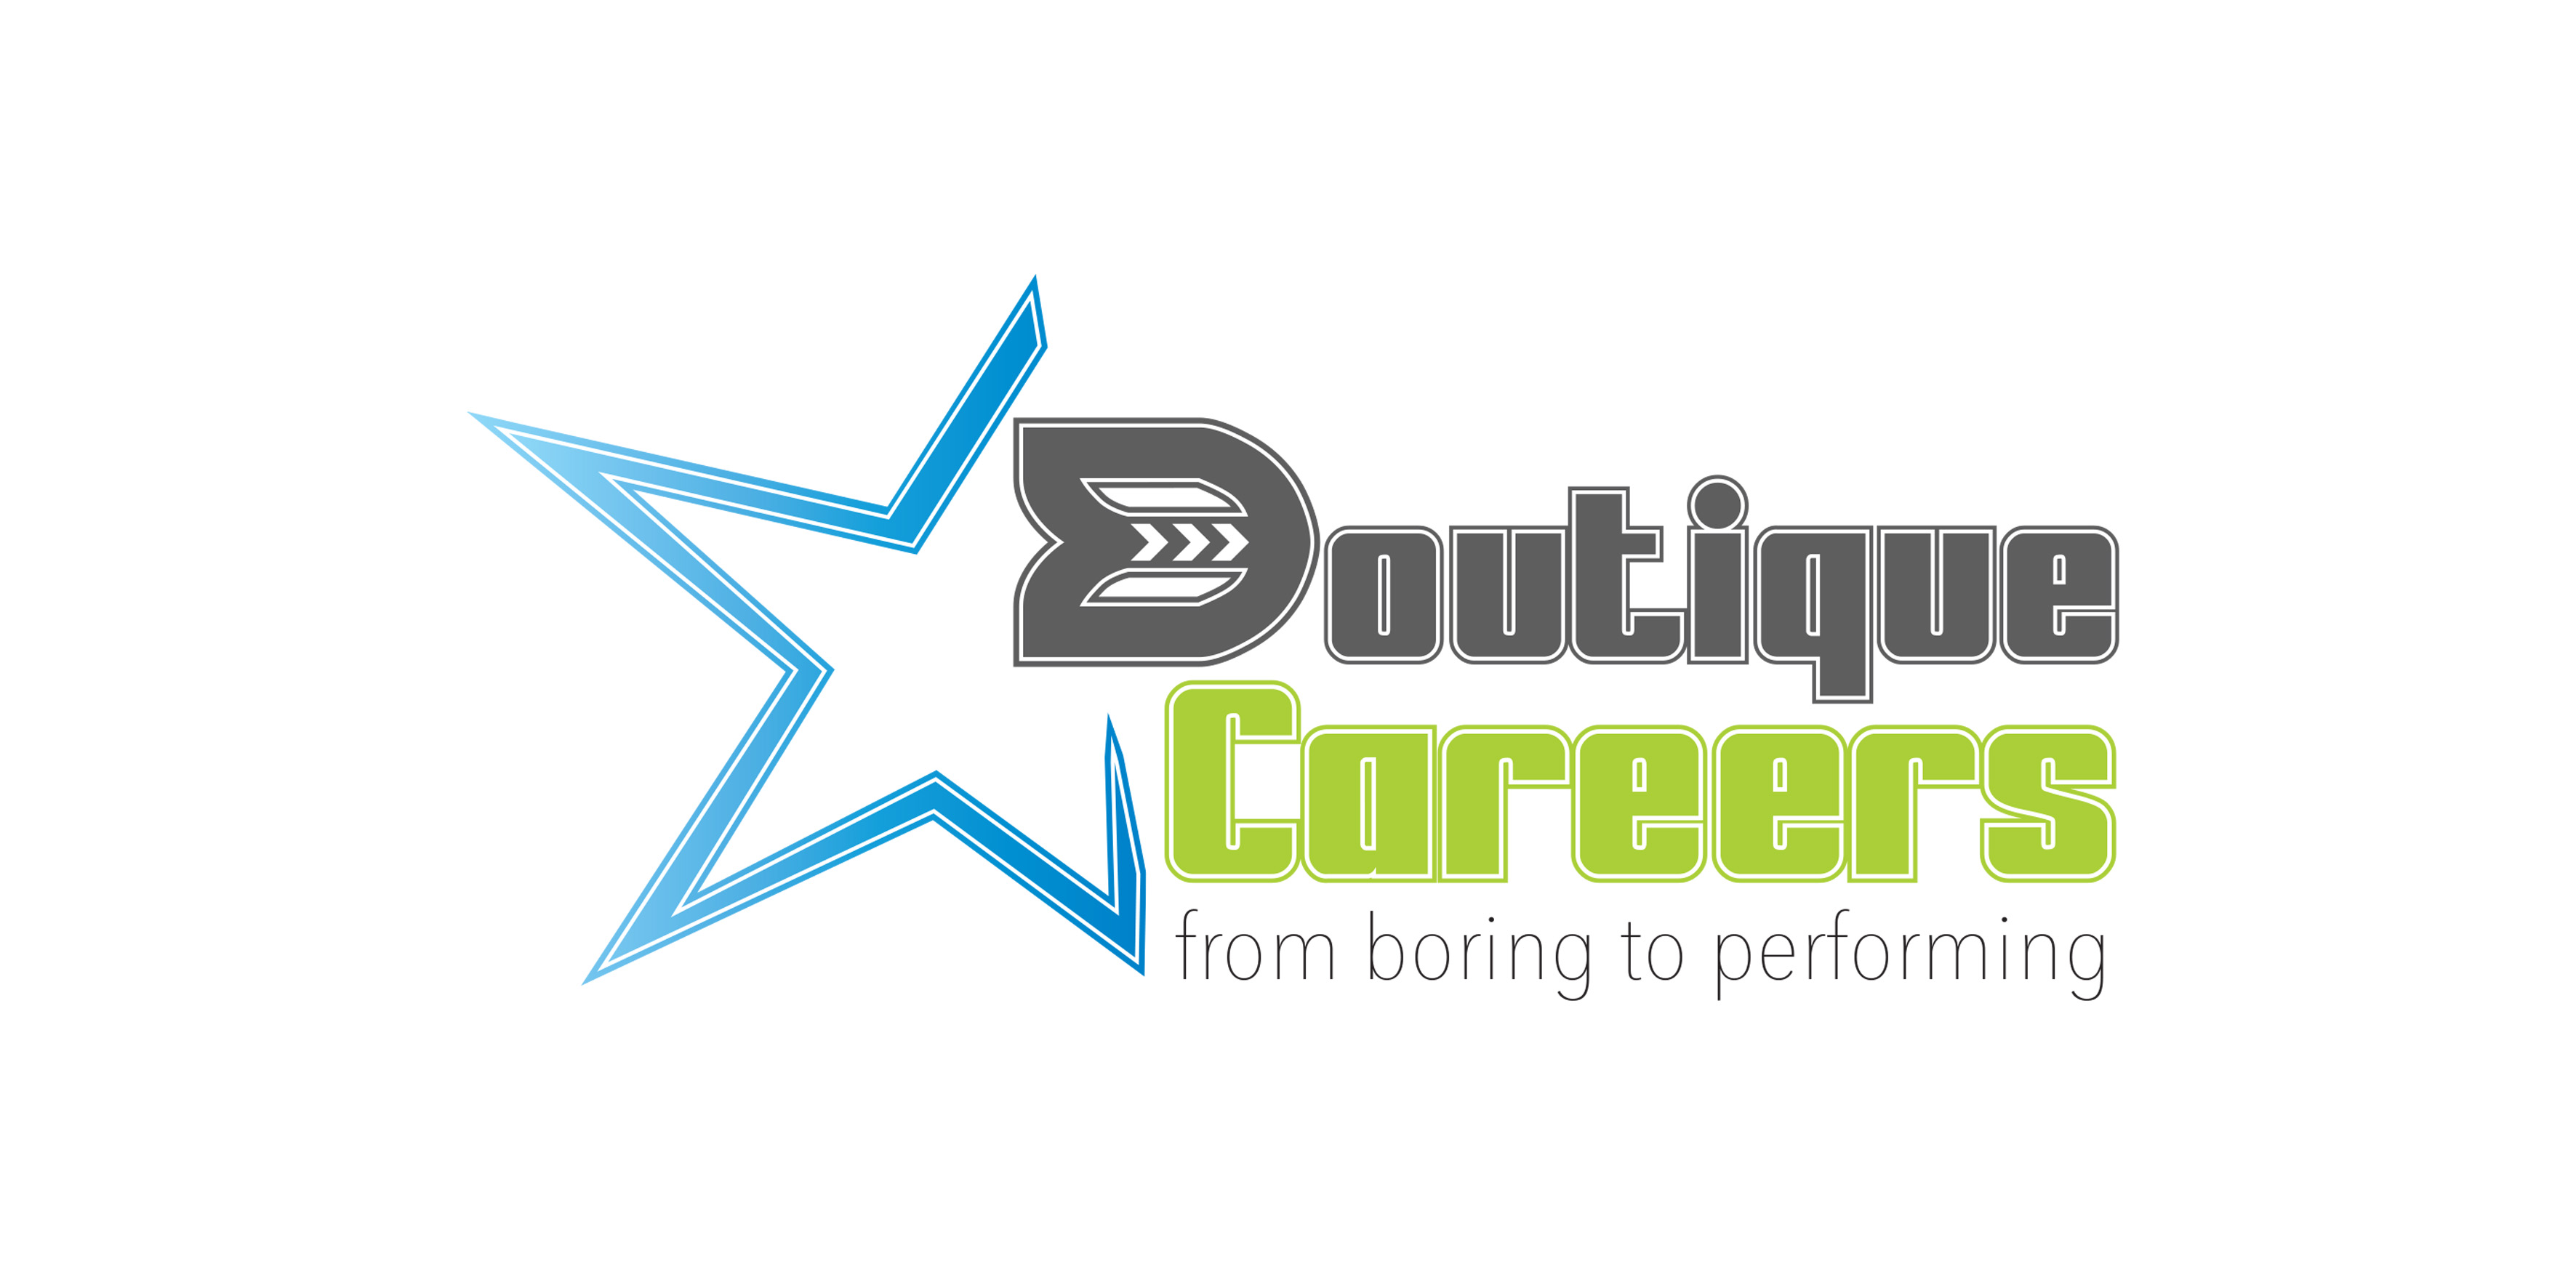 Logo Design by latidesign - Entry No. 76 in the Logo Design Contest Captivating Logo Design for Boutique Careers.